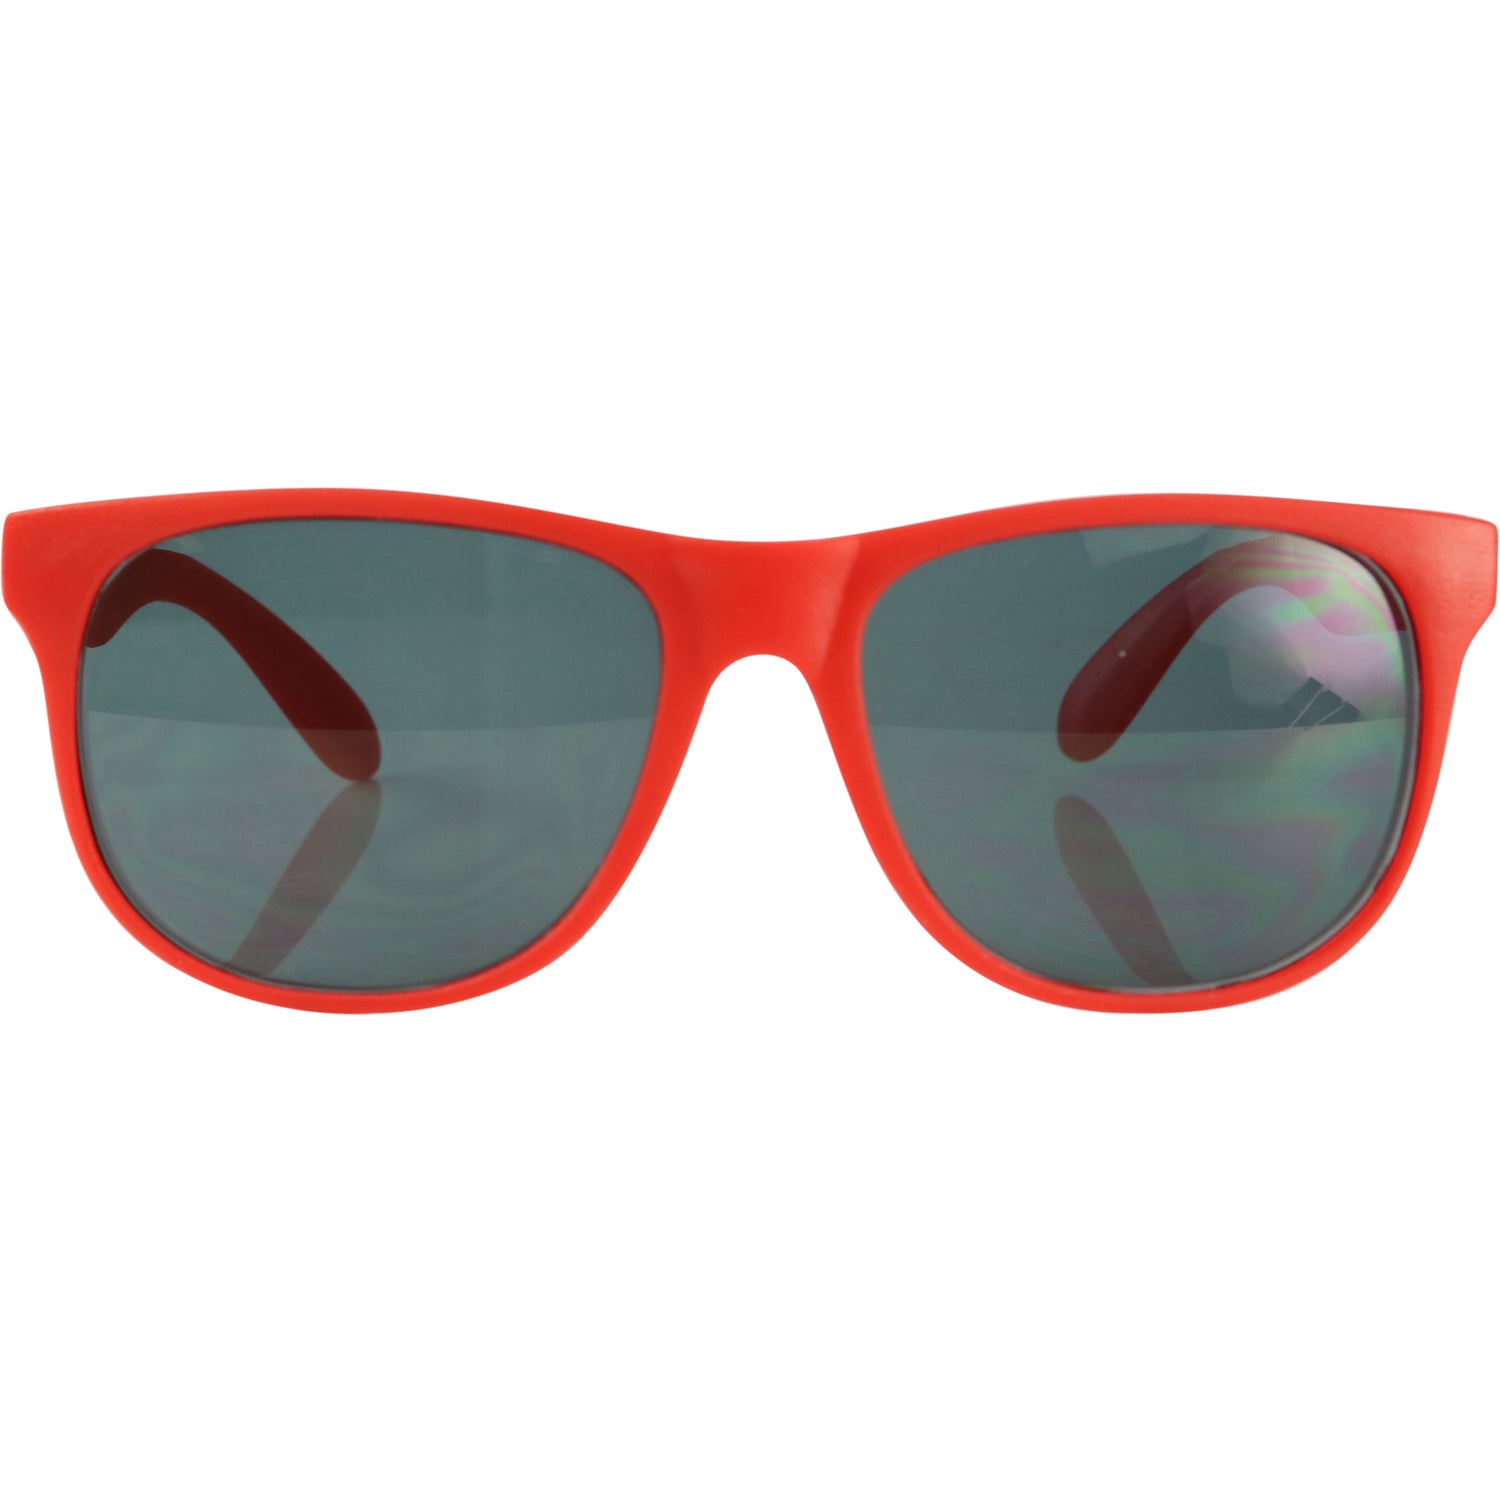 ee0848865b8 Single Tone Matte Sunglasses